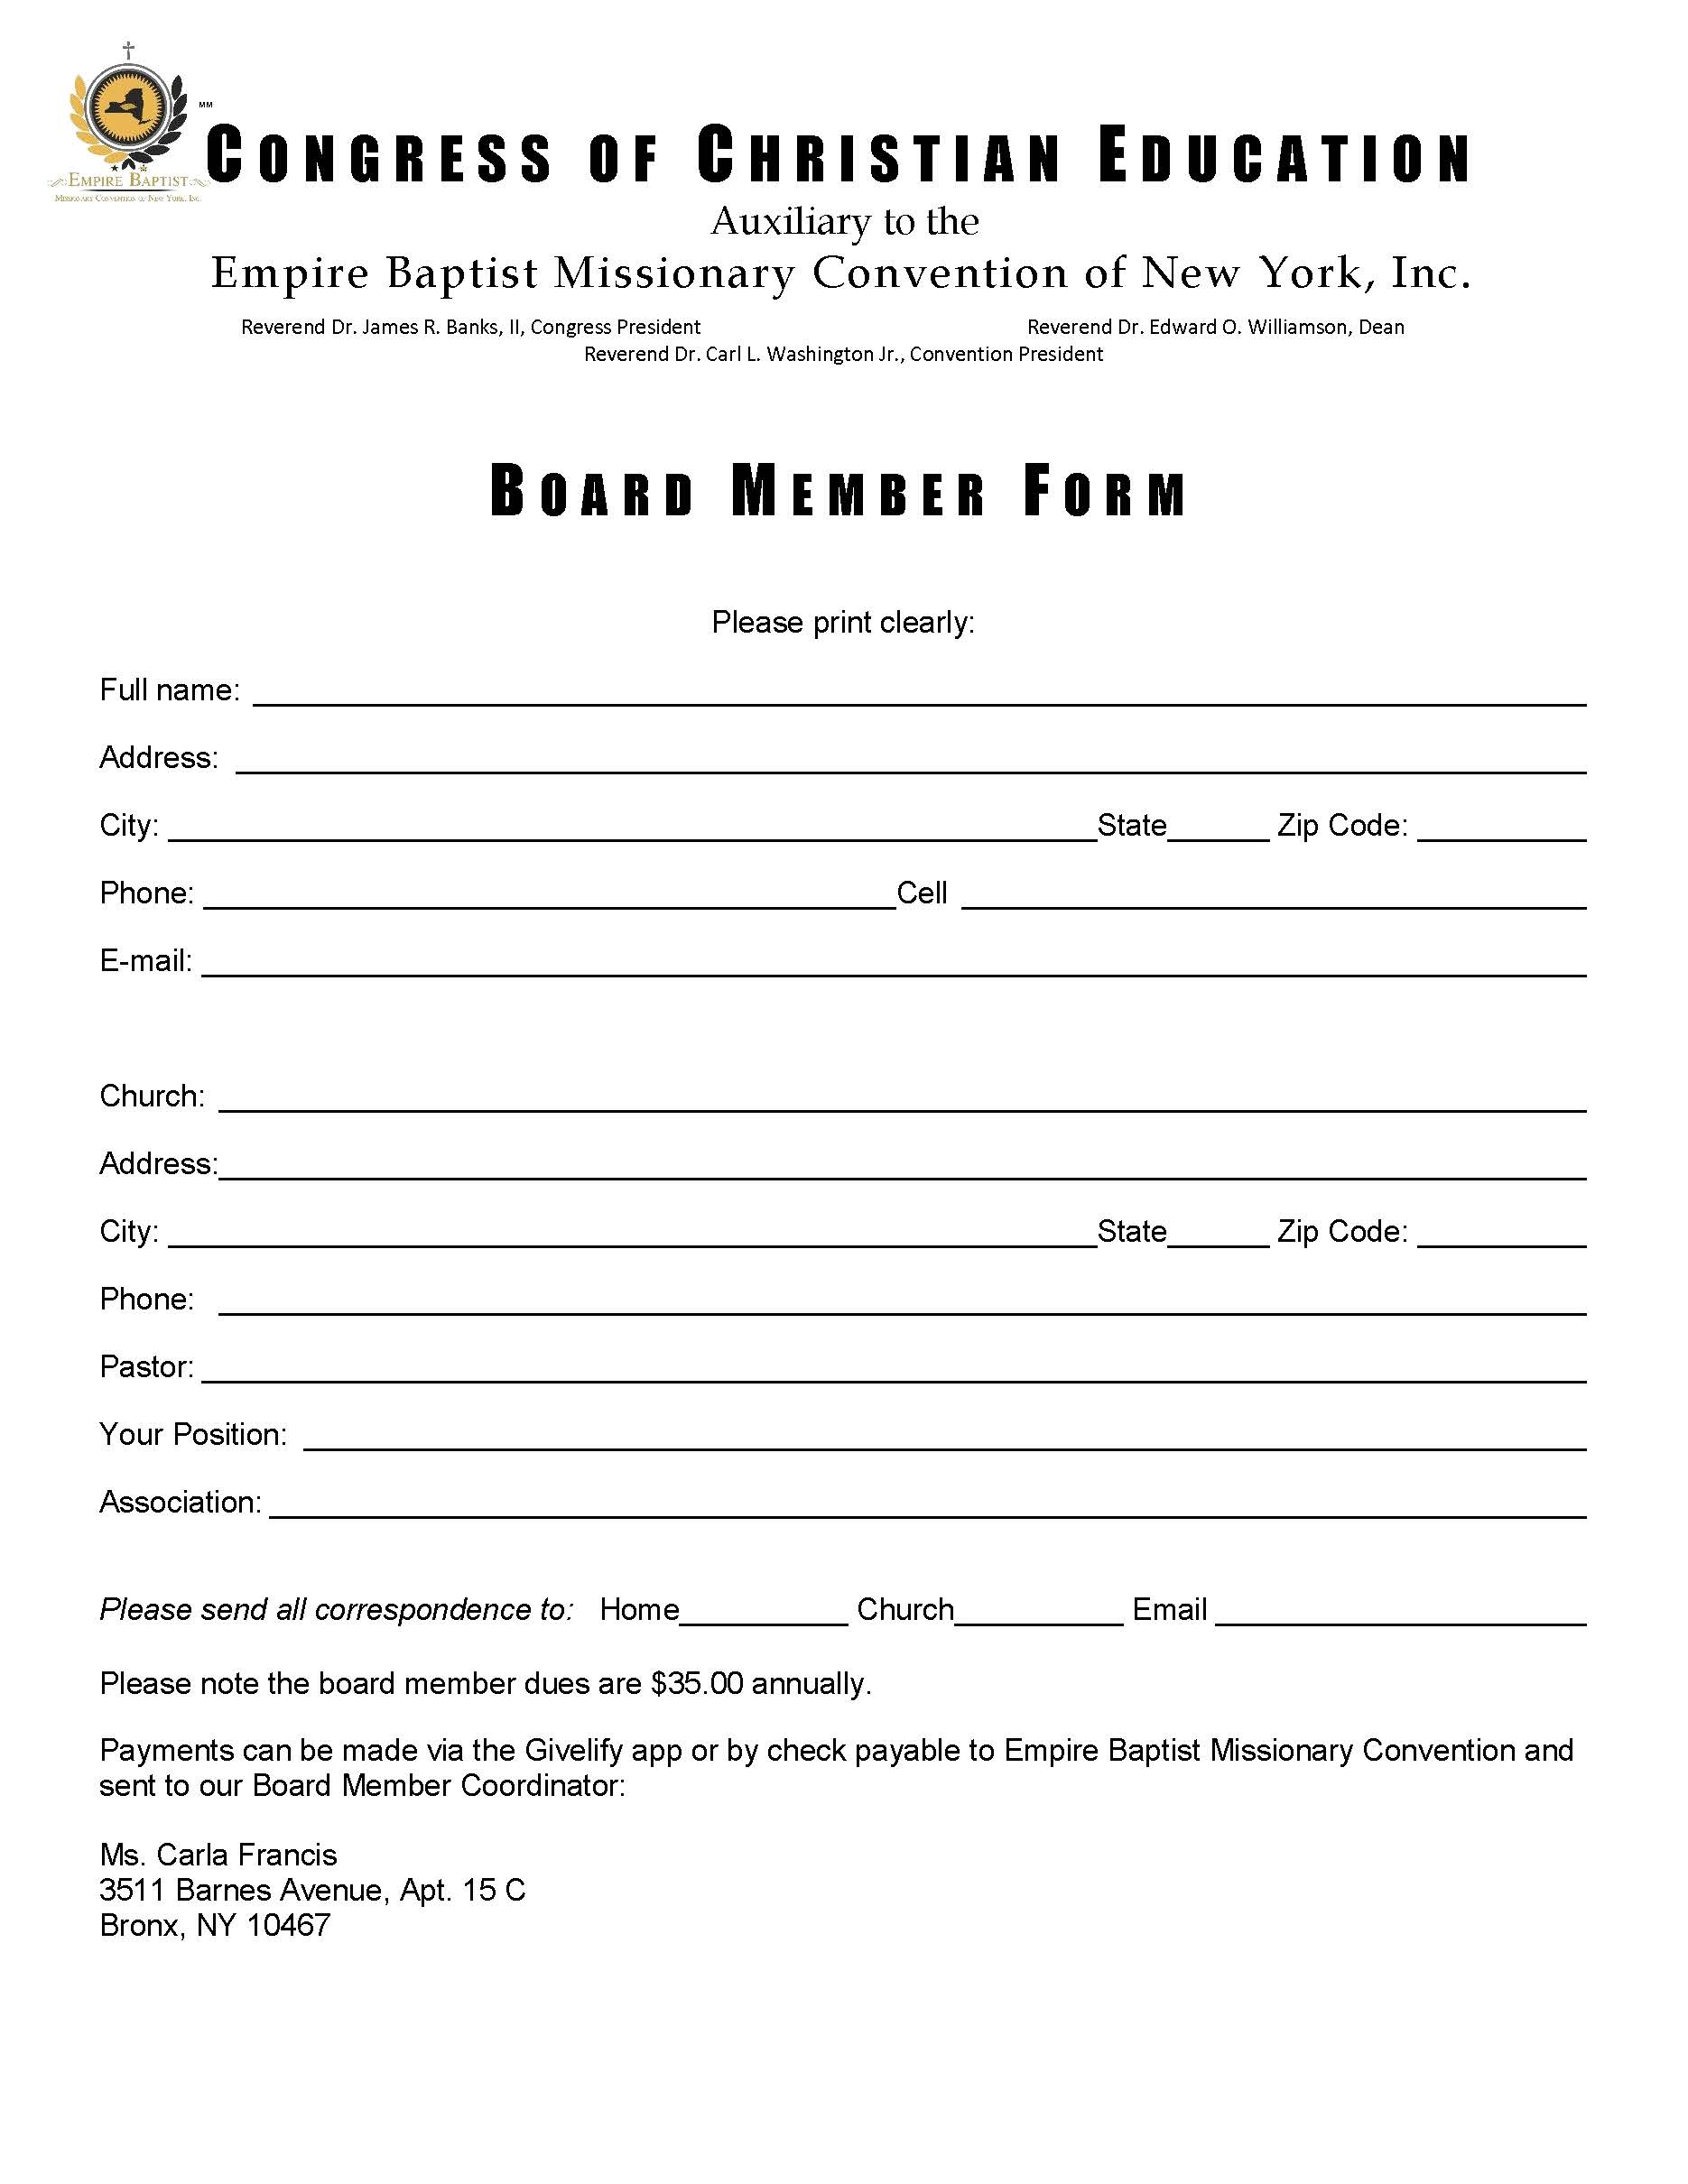 Congress – Empire Baptist Missionary Convention